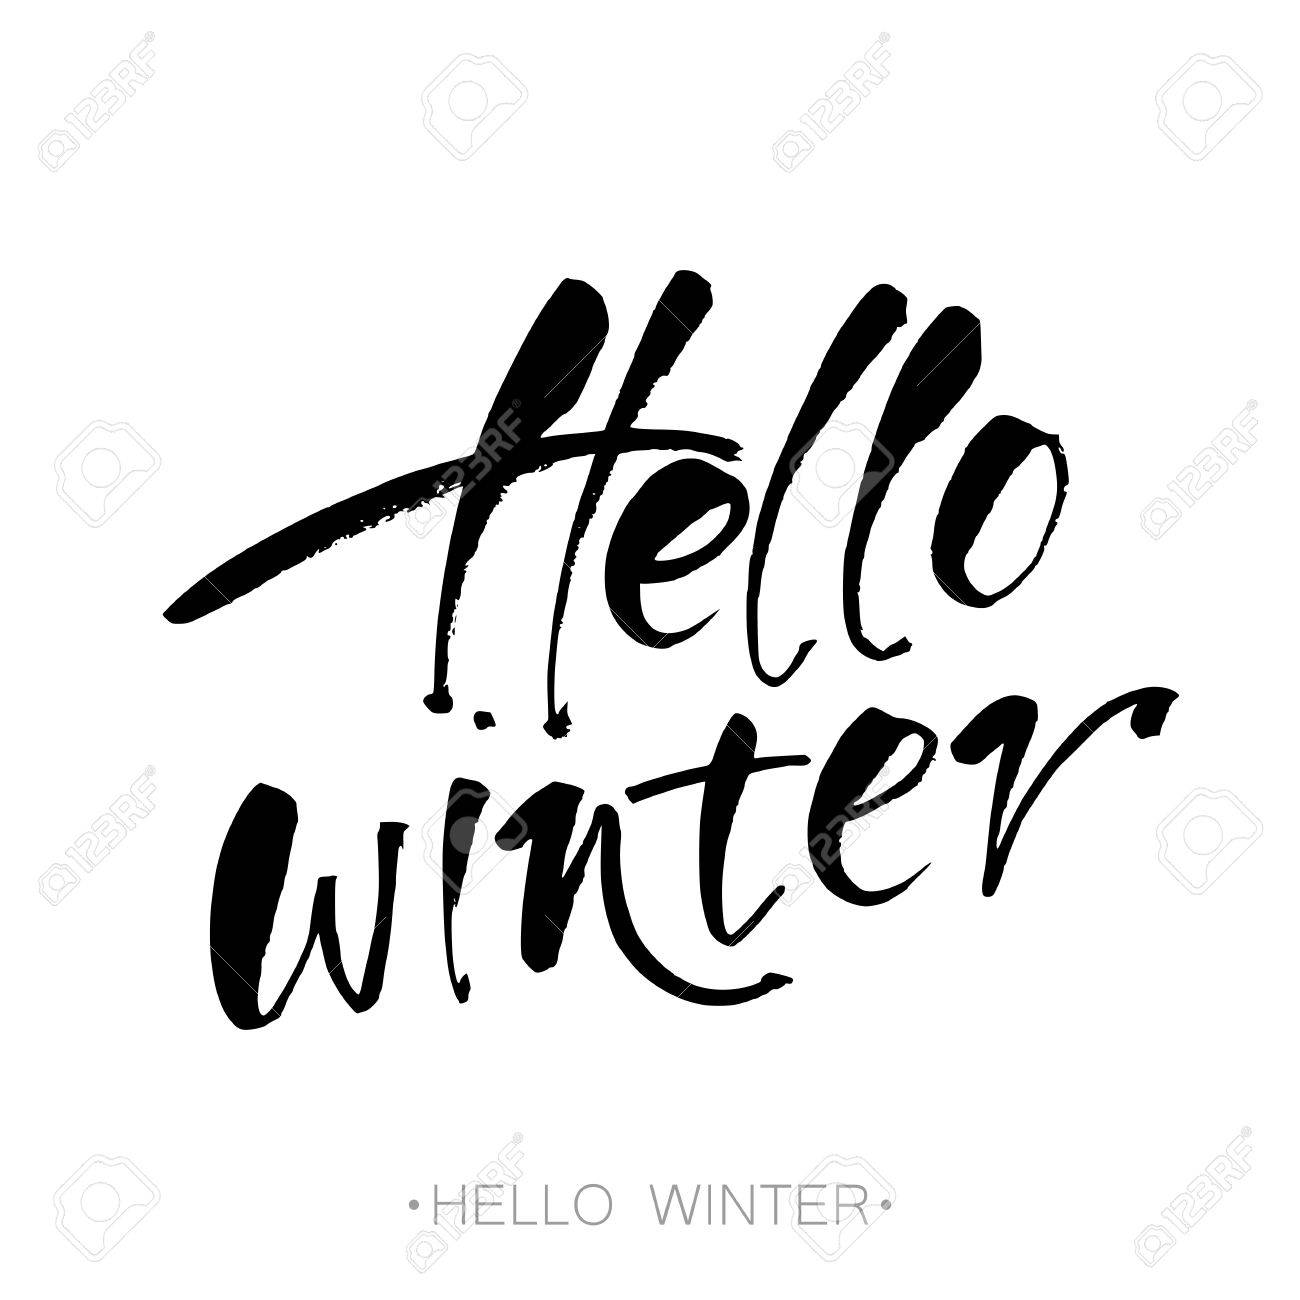 hello winter text letters inspirational poster print clothing design template